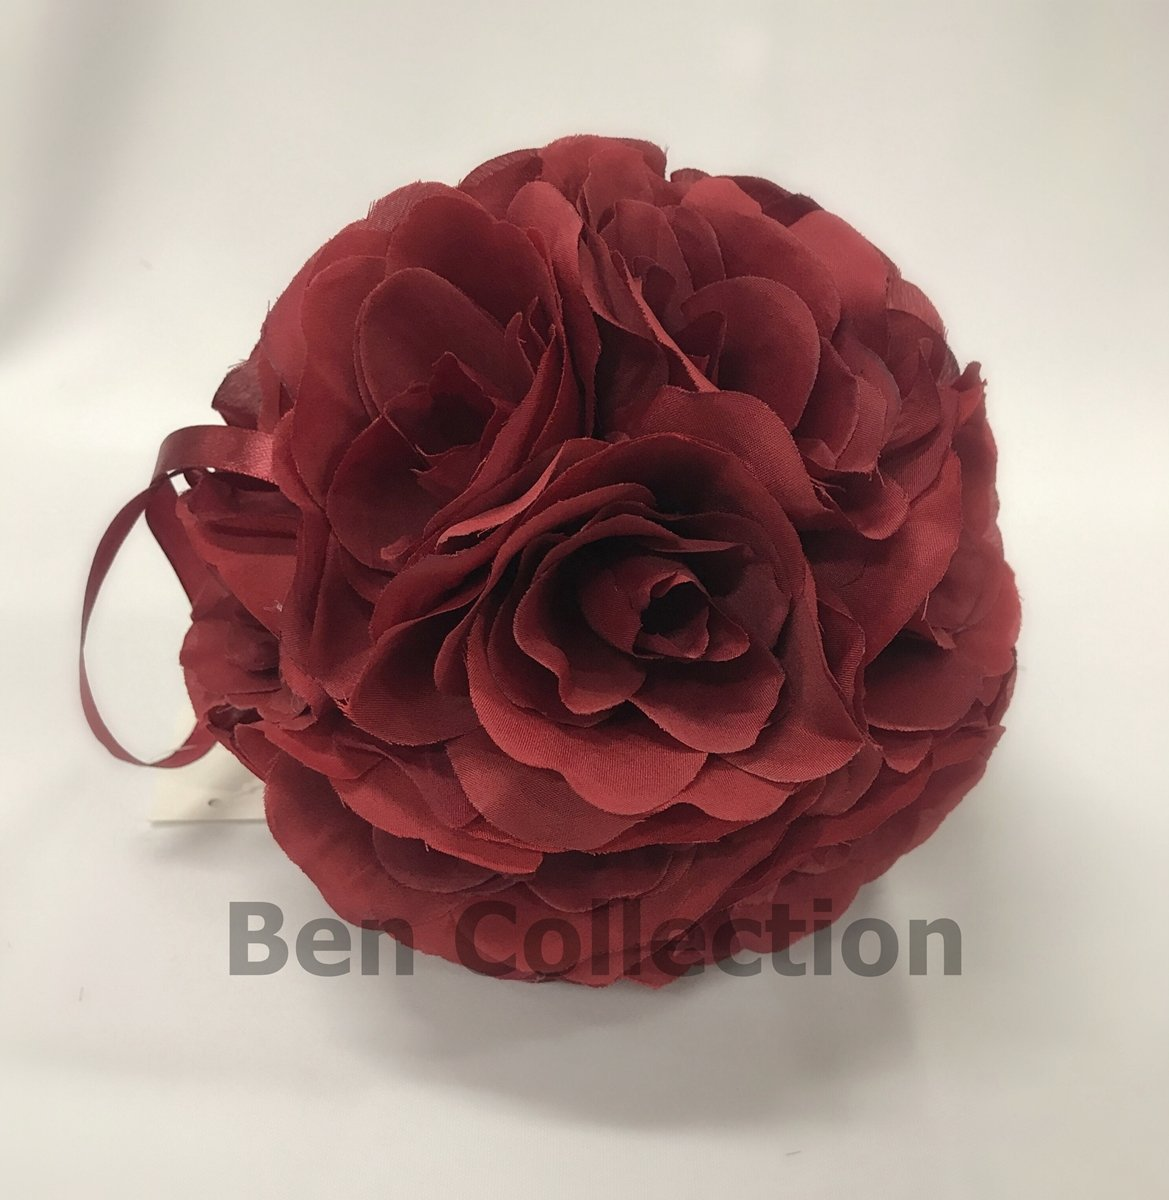 10-Pack-7-Inch-Romantic-Rose-Pomander-Flower-Balls-Rose-Bridal-for-Wedding-Bouquets-Artificial-Flower-DIY-Burgundy-By-Ben-Collection